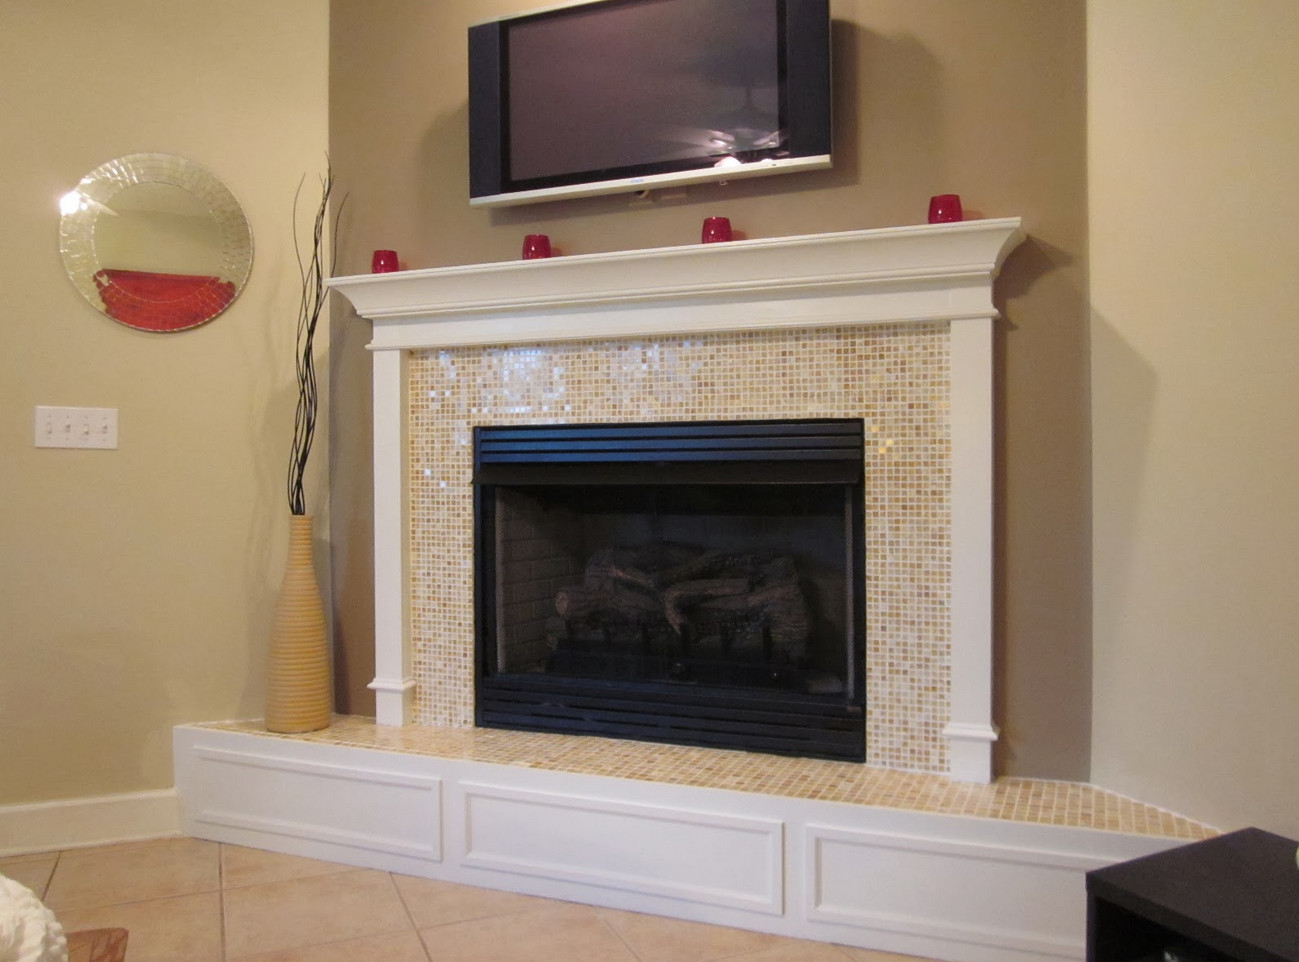 Fireplace Mantels And Surrounds Ideas Simple Fireplace Mantels And Surrounds Ideas  Interior Design Ideas Inspiration